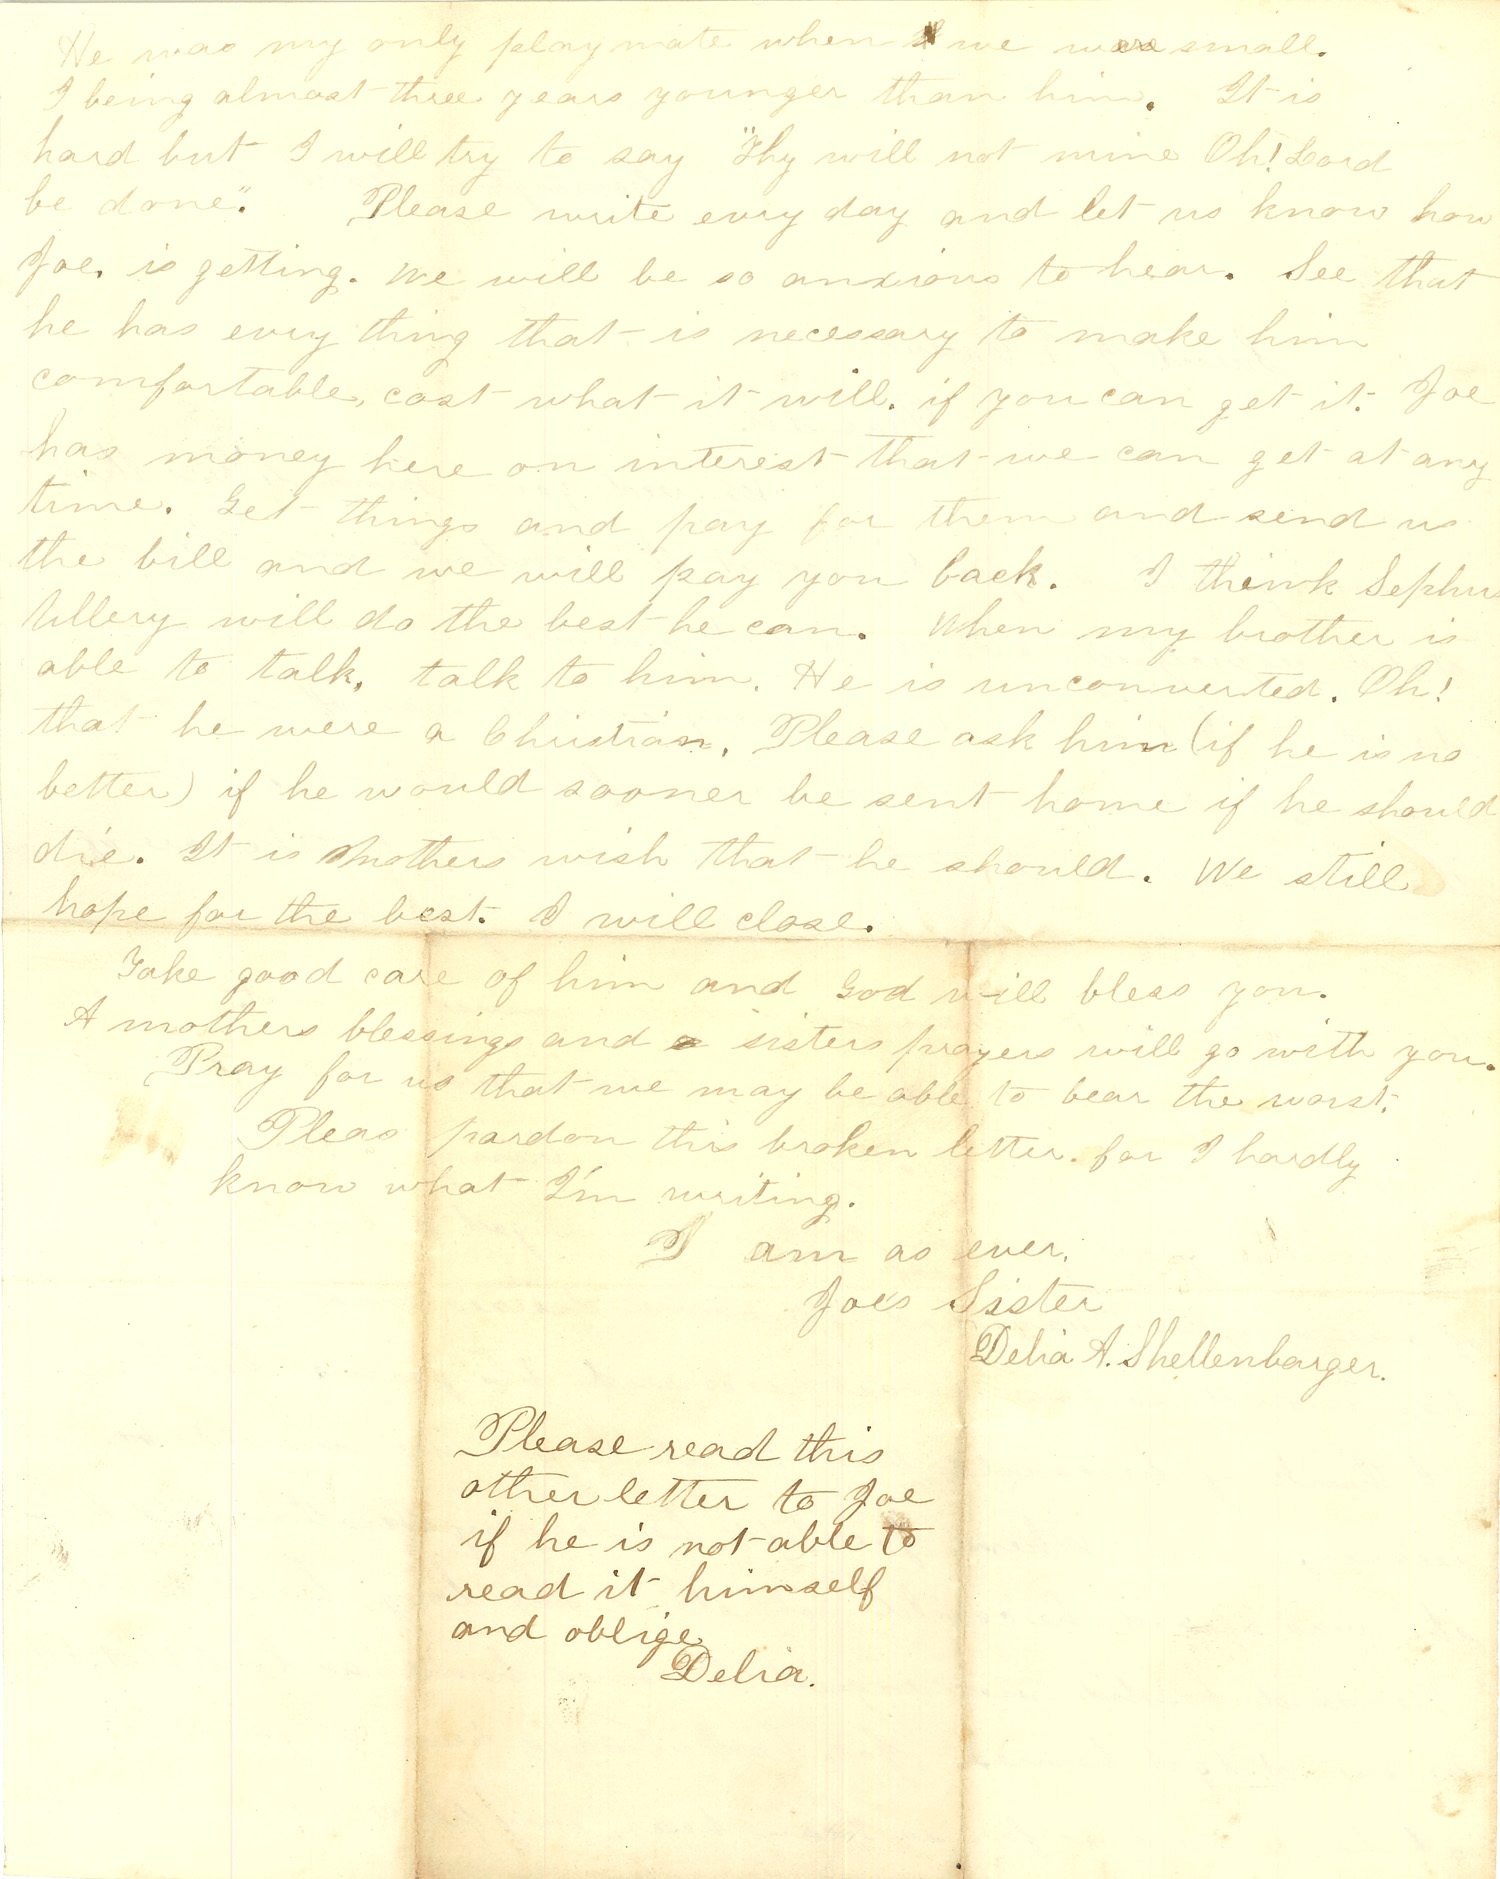 Joseph Culver Letter, March 31, 1864, Page 2